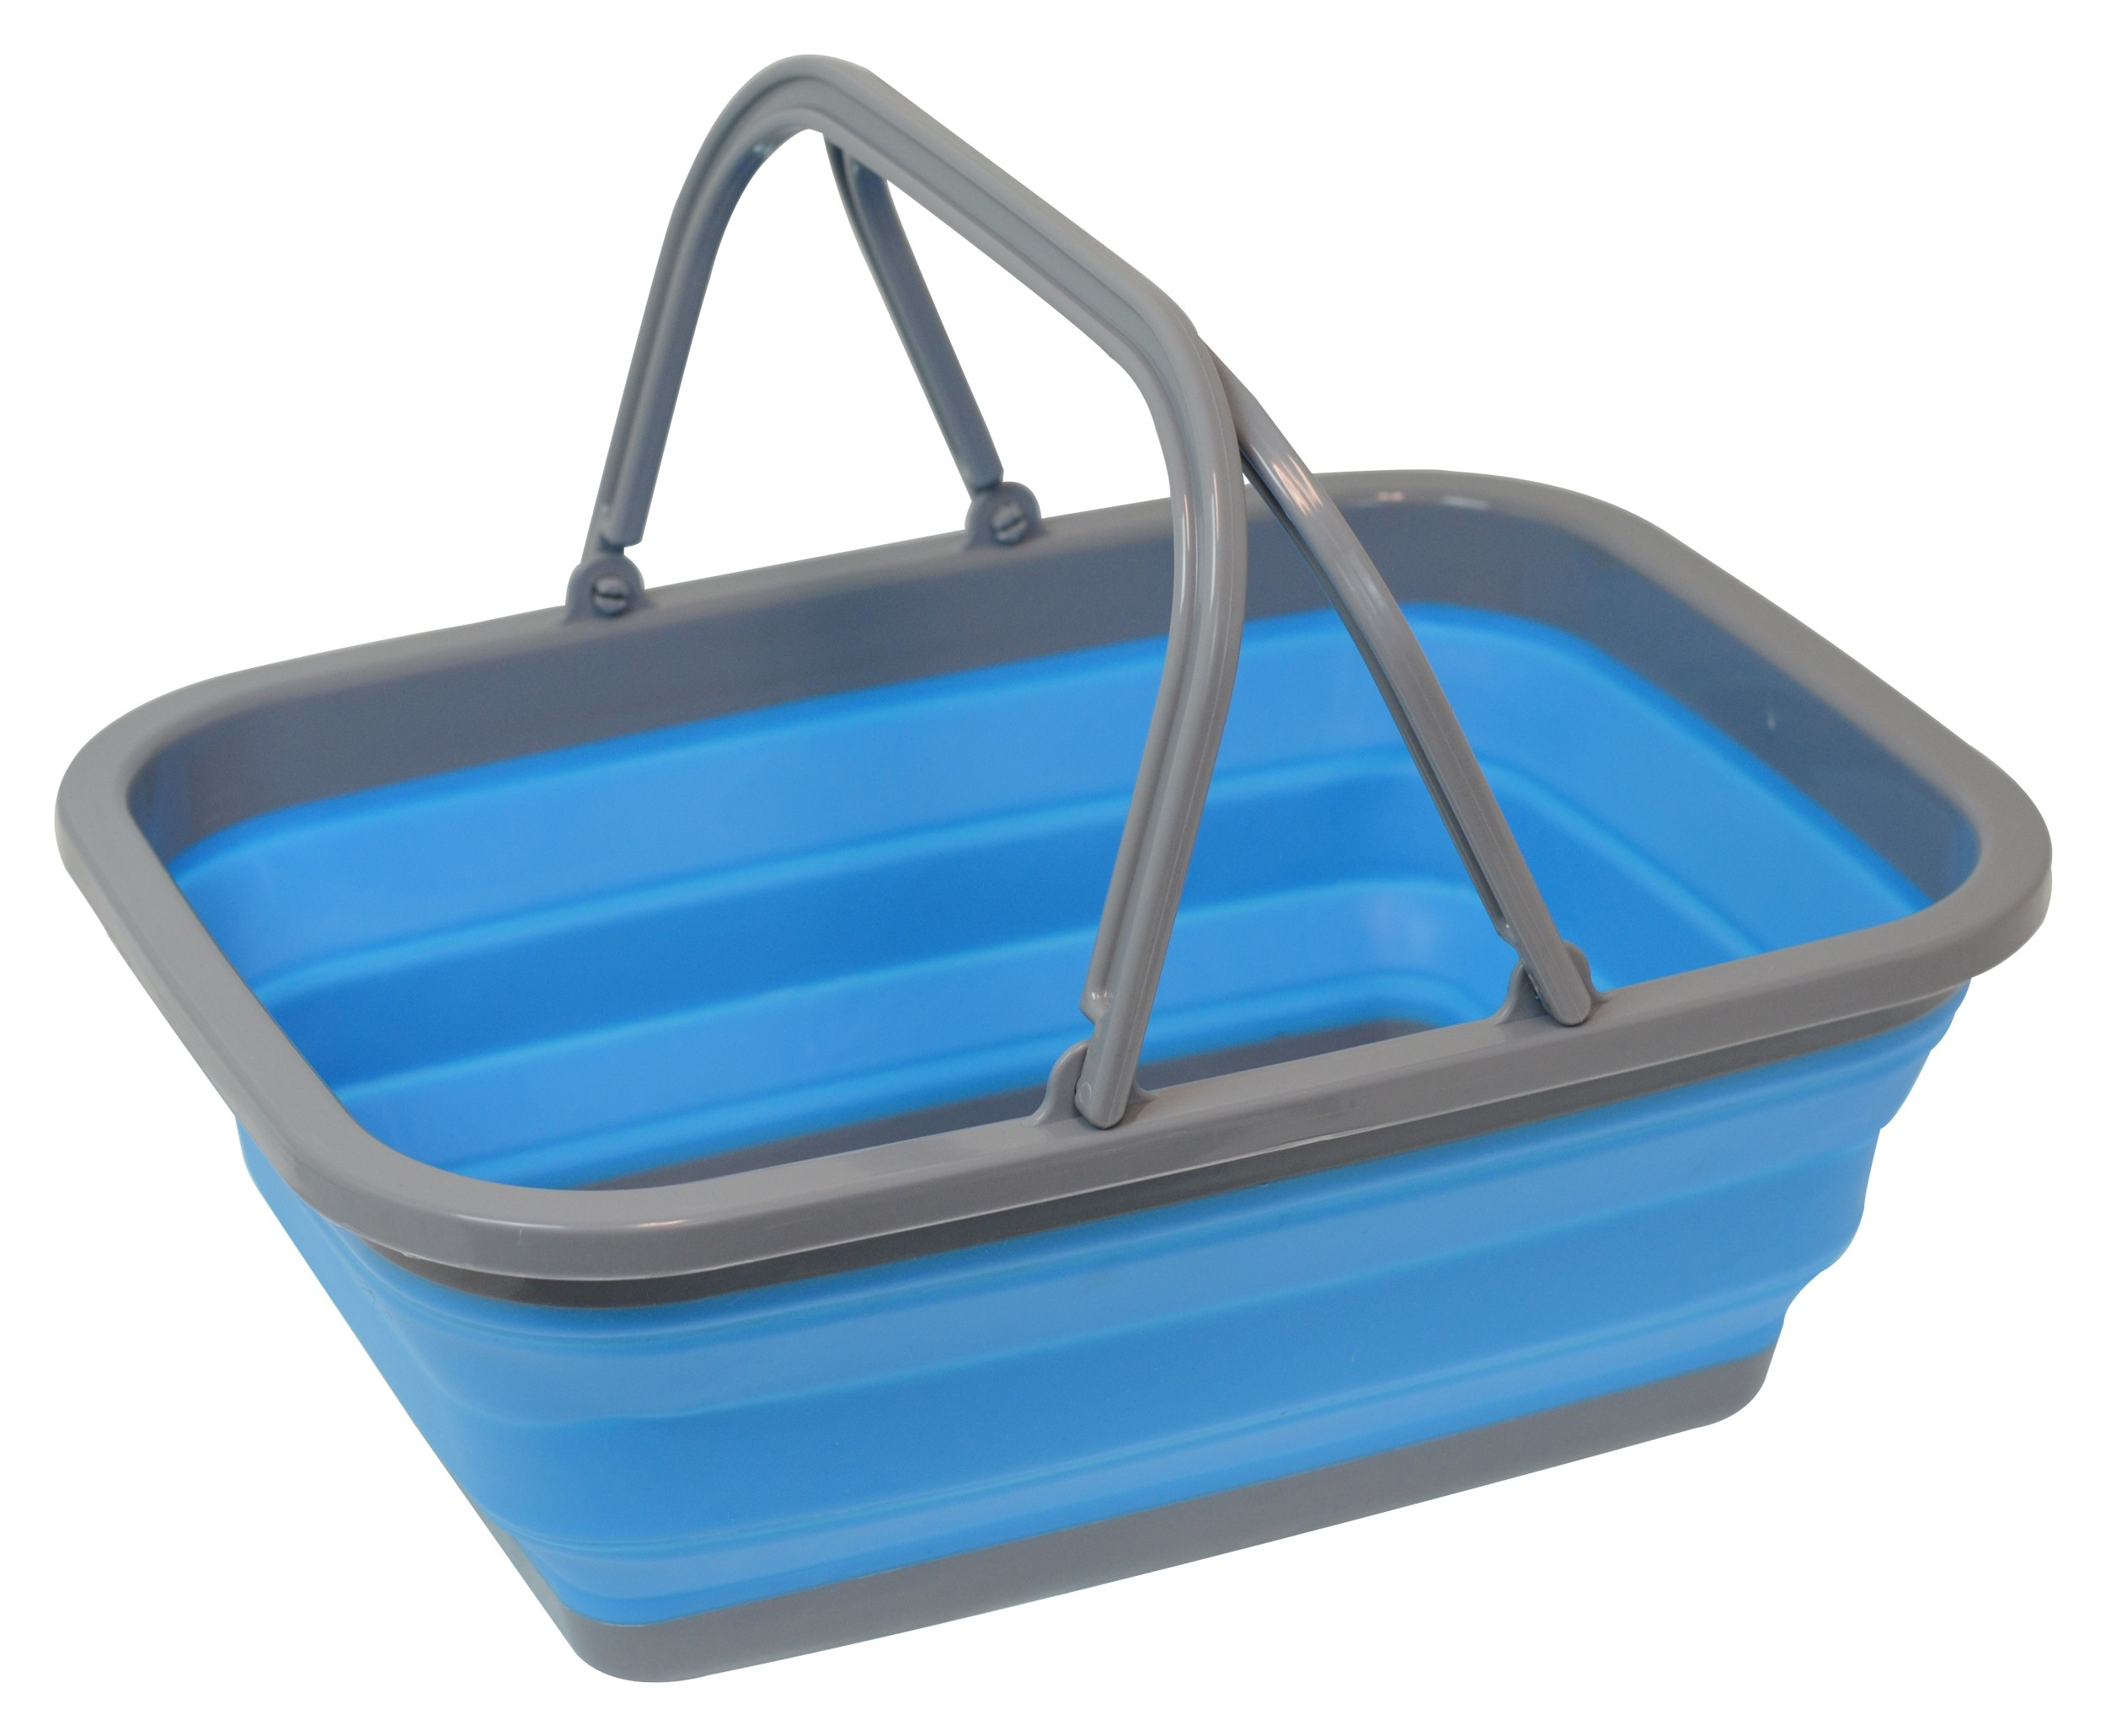 Collapsible Basket W/ Handle, Blue